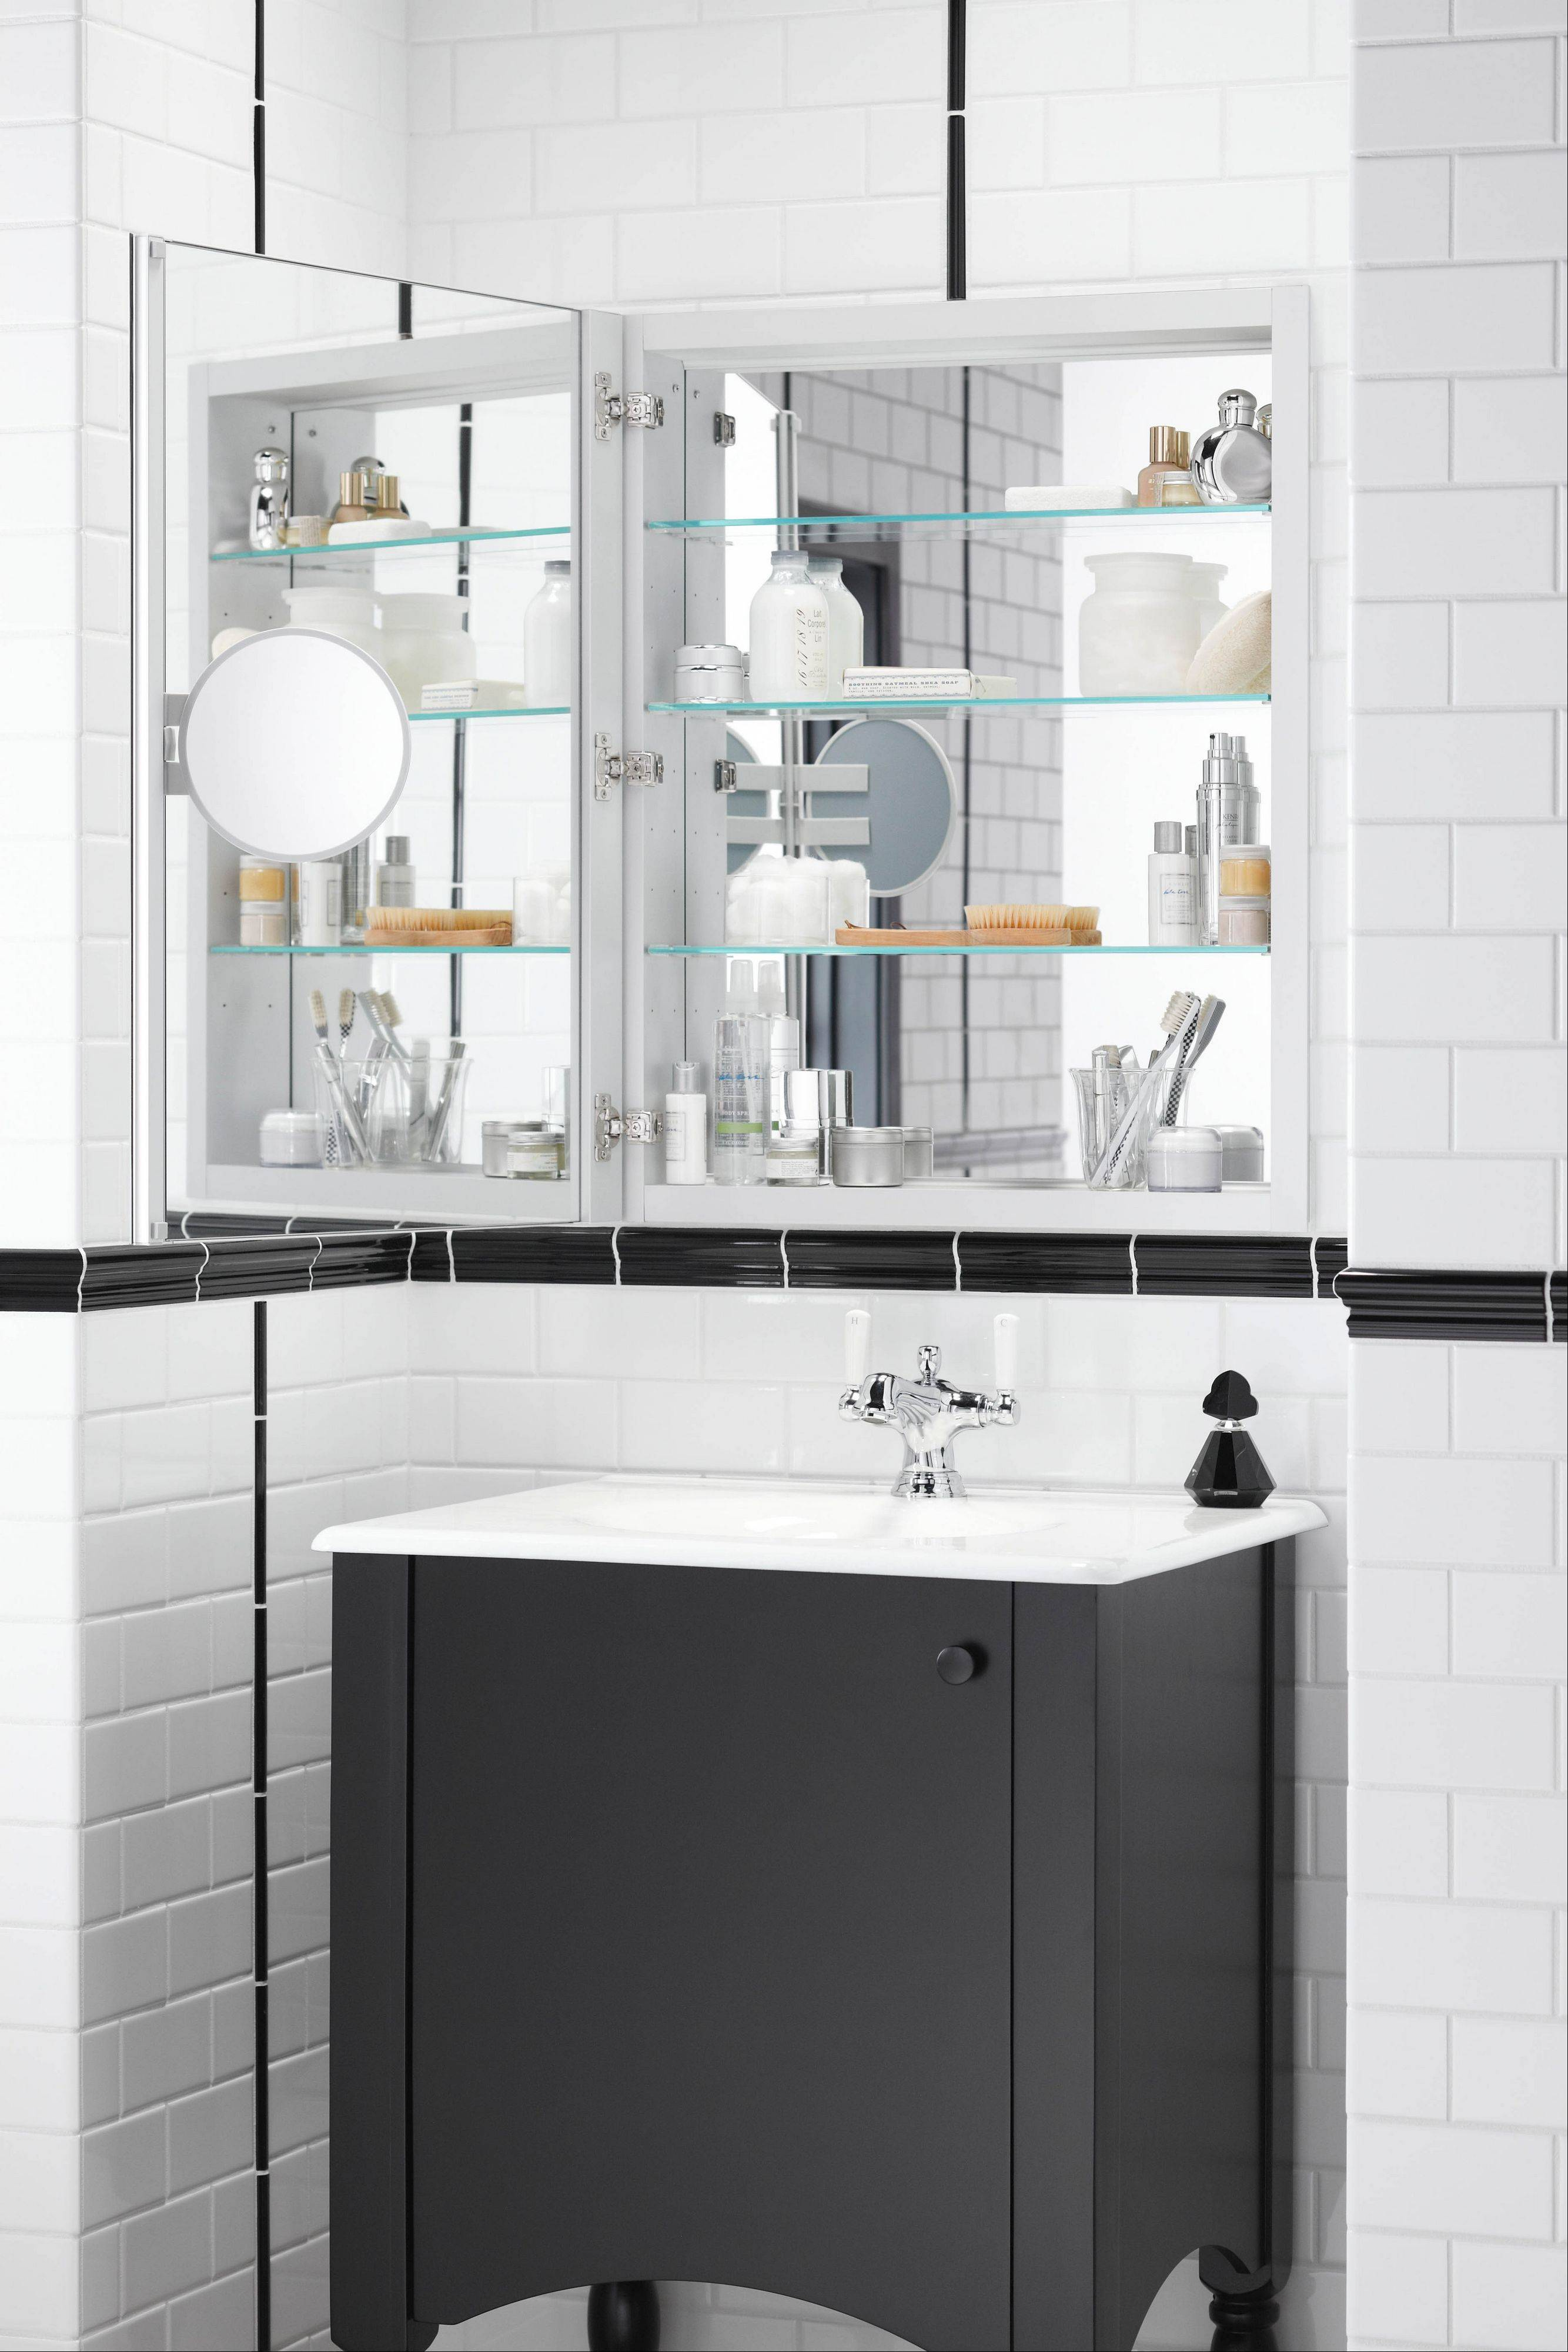 With all the new styles available, take your time in choosing the right medicine cabinet for your bathroom.